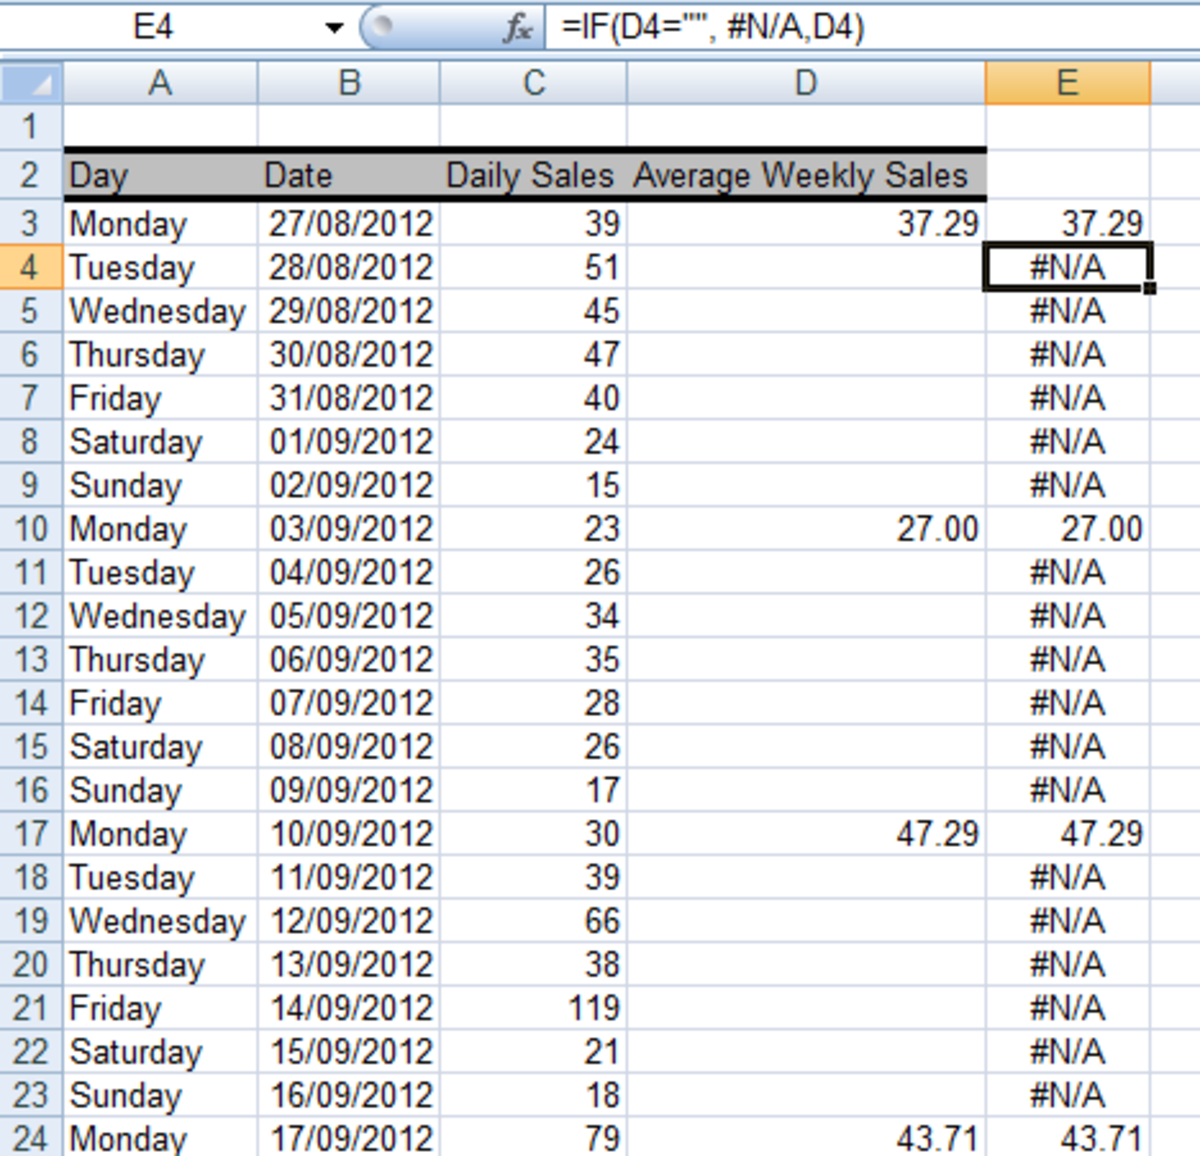 Ediblewildsus  Marvellous How To Get Excel  And  To Ignore Empty Cells In A Chart Or  With Outstanding Using The If Function In A Formula To Convert Empty Cells To Na With Lovely Using Multiple Formulas In Excel Also Survey Traverse Calculation Excel In Addition Excel Advanced Macros And Excel Office Interiors As Well As Wht Is Excel Additionally Ms Excel Accounting From Turbofuturecom With Ediblewildsus  Outstanding How To Get Excel  And  To Ignore Empty Cells In A Chart Or  With Lovely Using The If Function In A Formula To Convert Empty Cells To Na And Marvellous Using Multiple Formulas In Excel Also Survey Traverse Calculation Excel In Addition Excel Advanced Macros From Turbofuturecom